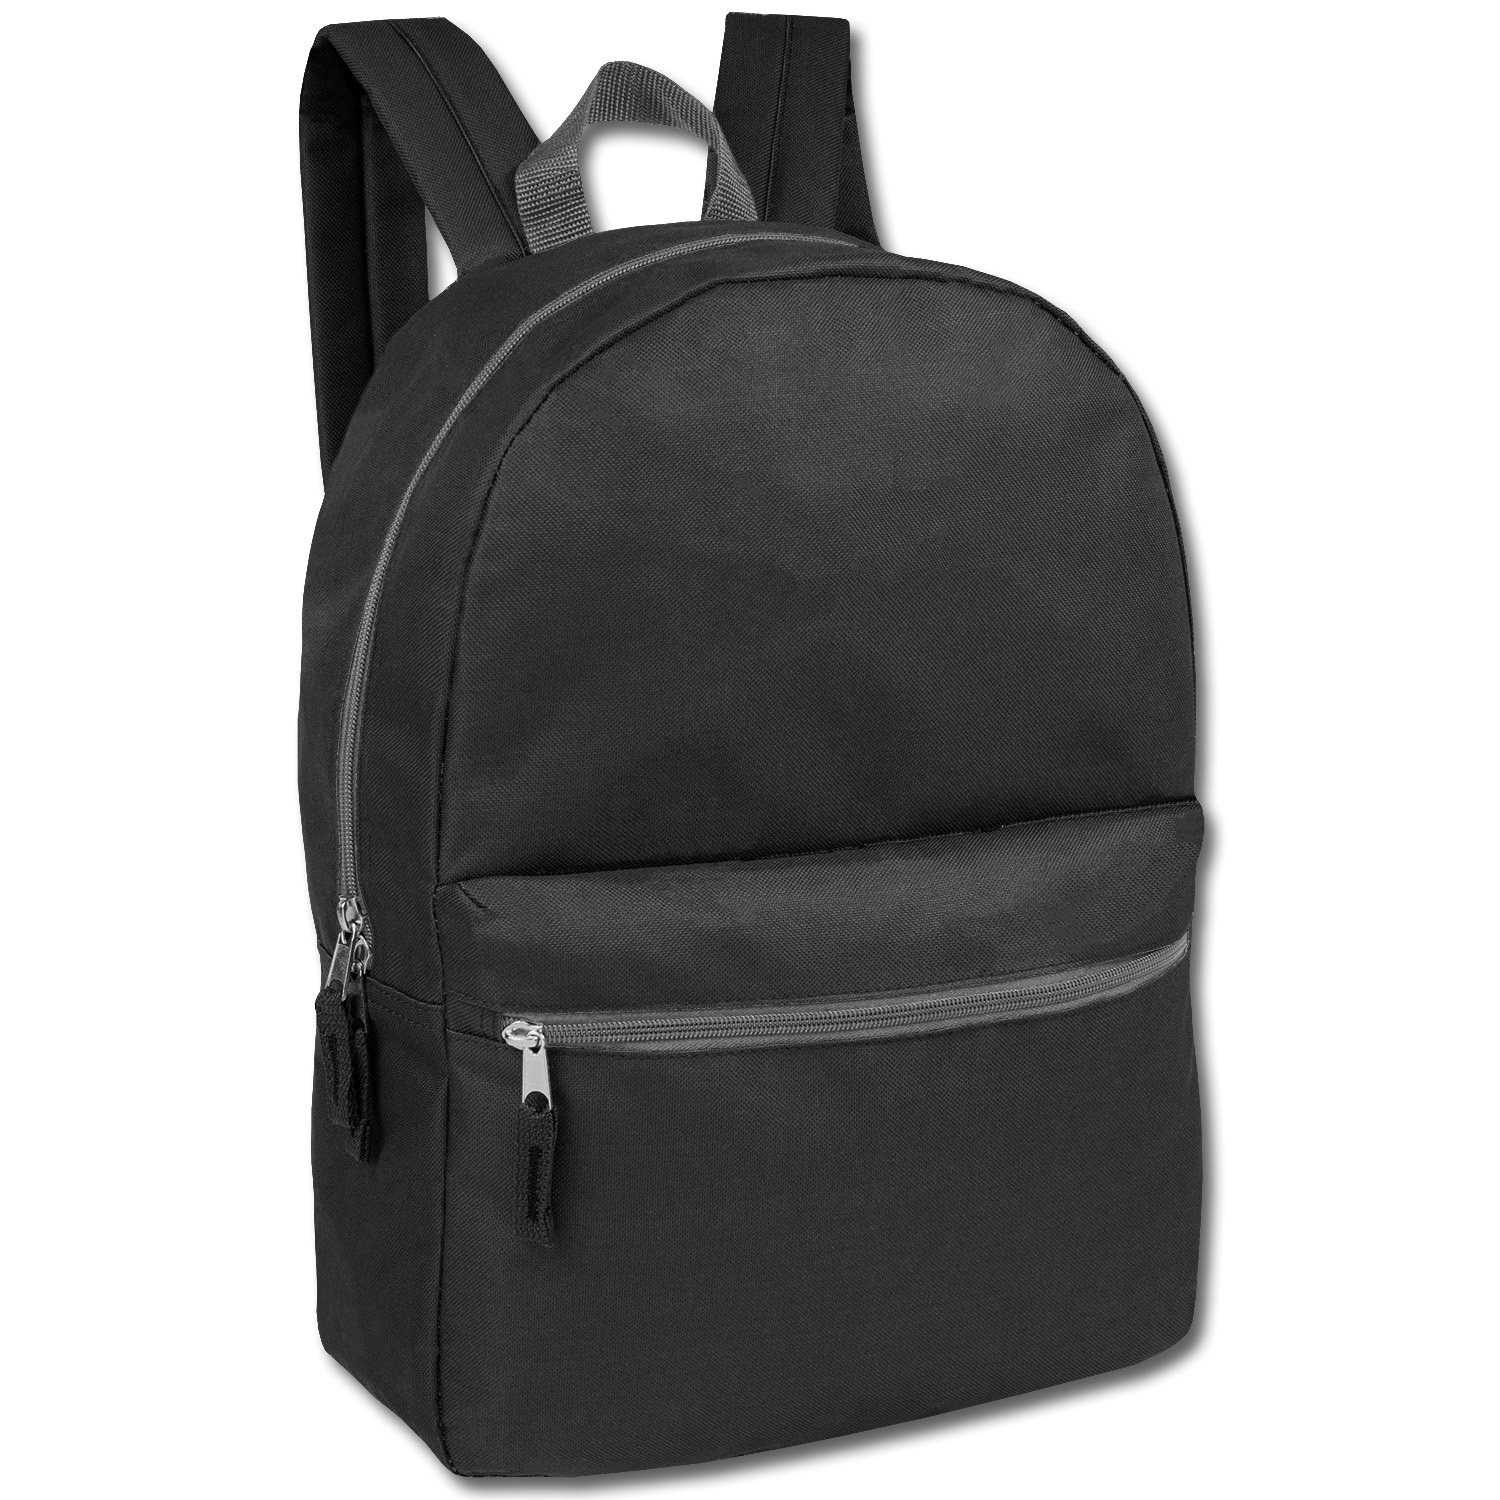 Trailmaker 17 Inch Classic Backpack - Black Only Case Pack 24 by Trailmakers